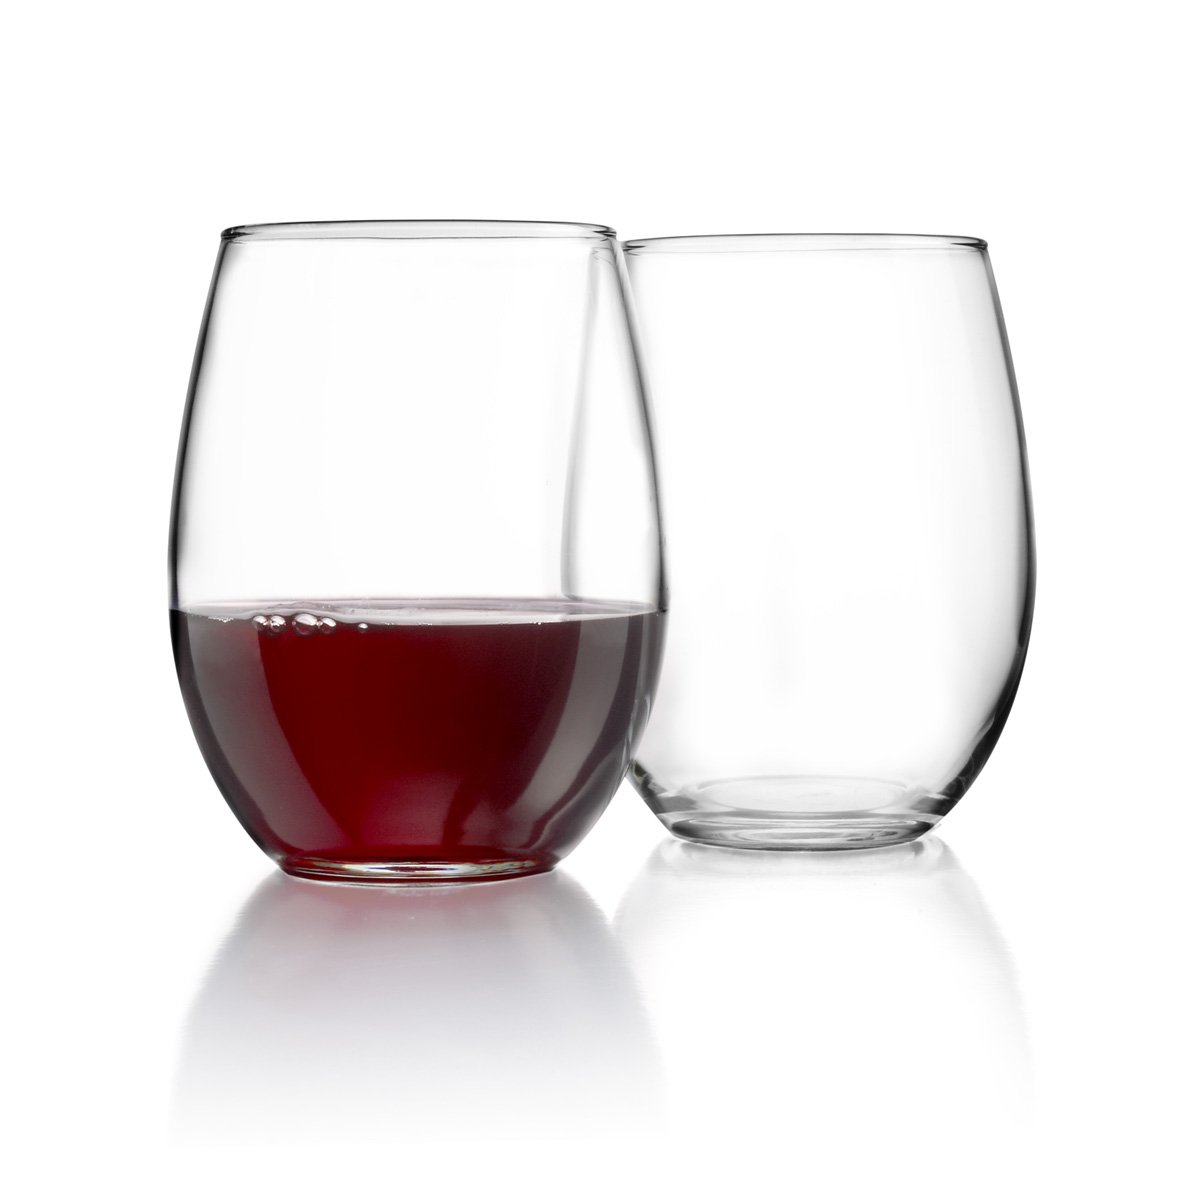 Luminarc Perfection Stemless Wine Glass (Set of 12), 15 oz, Clear - N0056 by Arc International